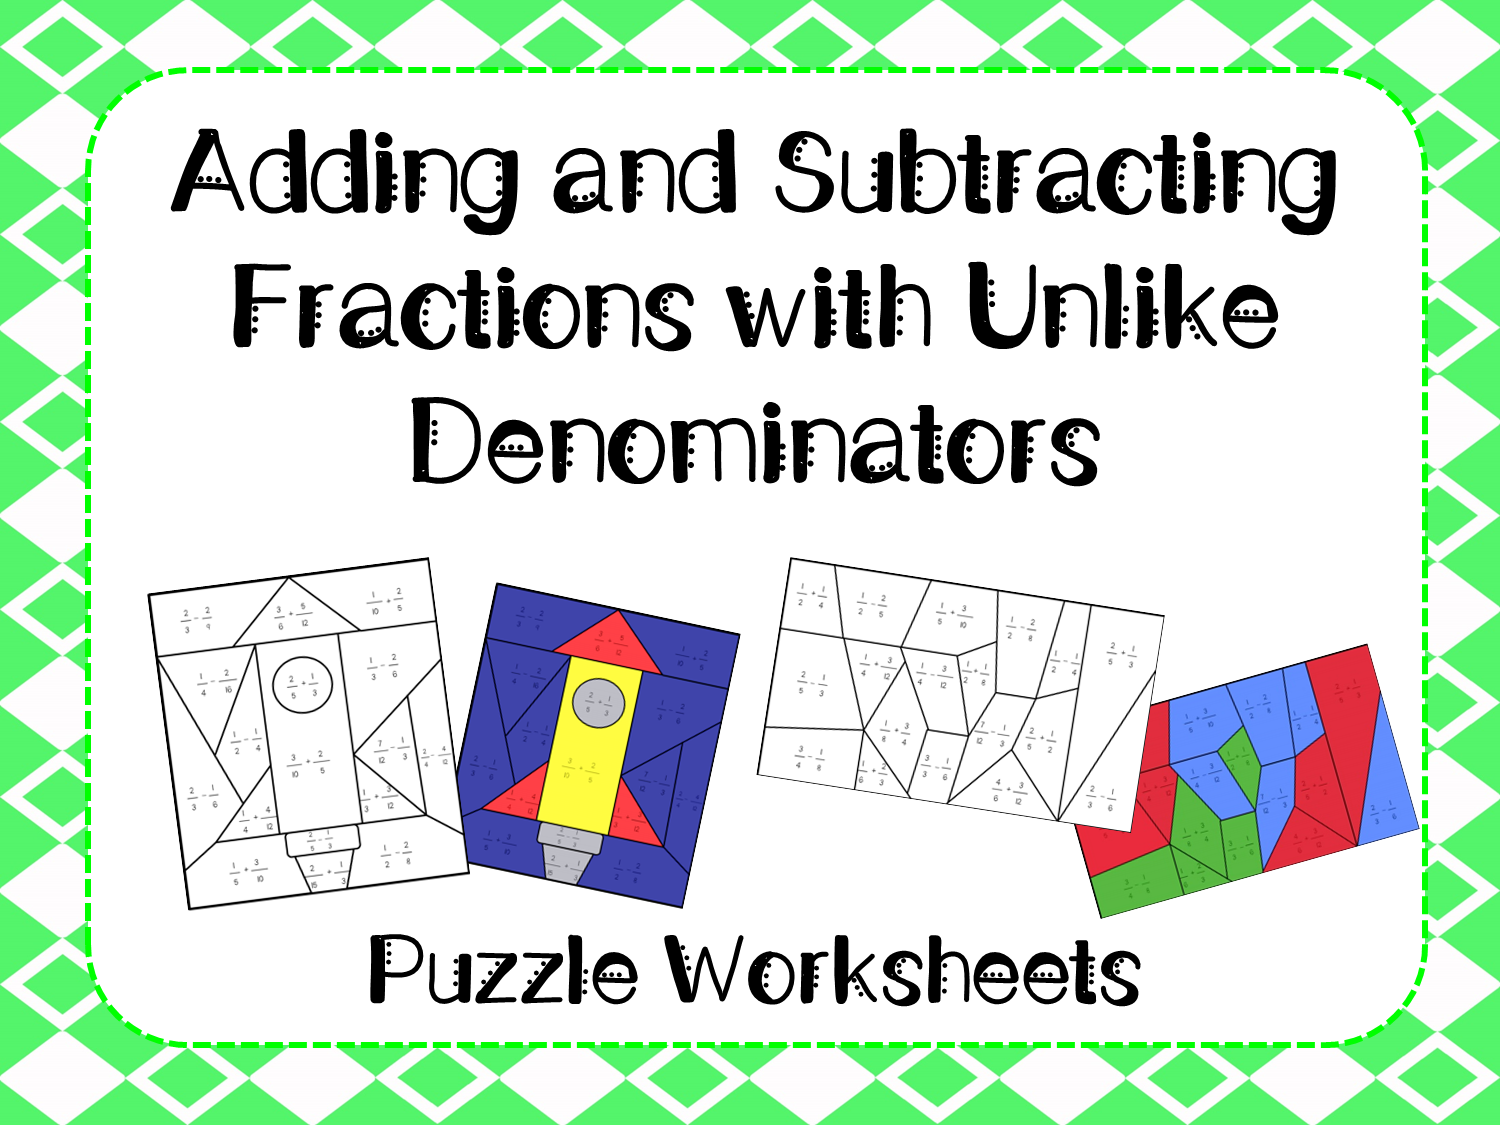 adding and subtracting fractions with unlike denominators puzzle  introduce and practice adding and subtracting fractions with unlike  denominators using these noprep worksheets students will solve fraction  equations and